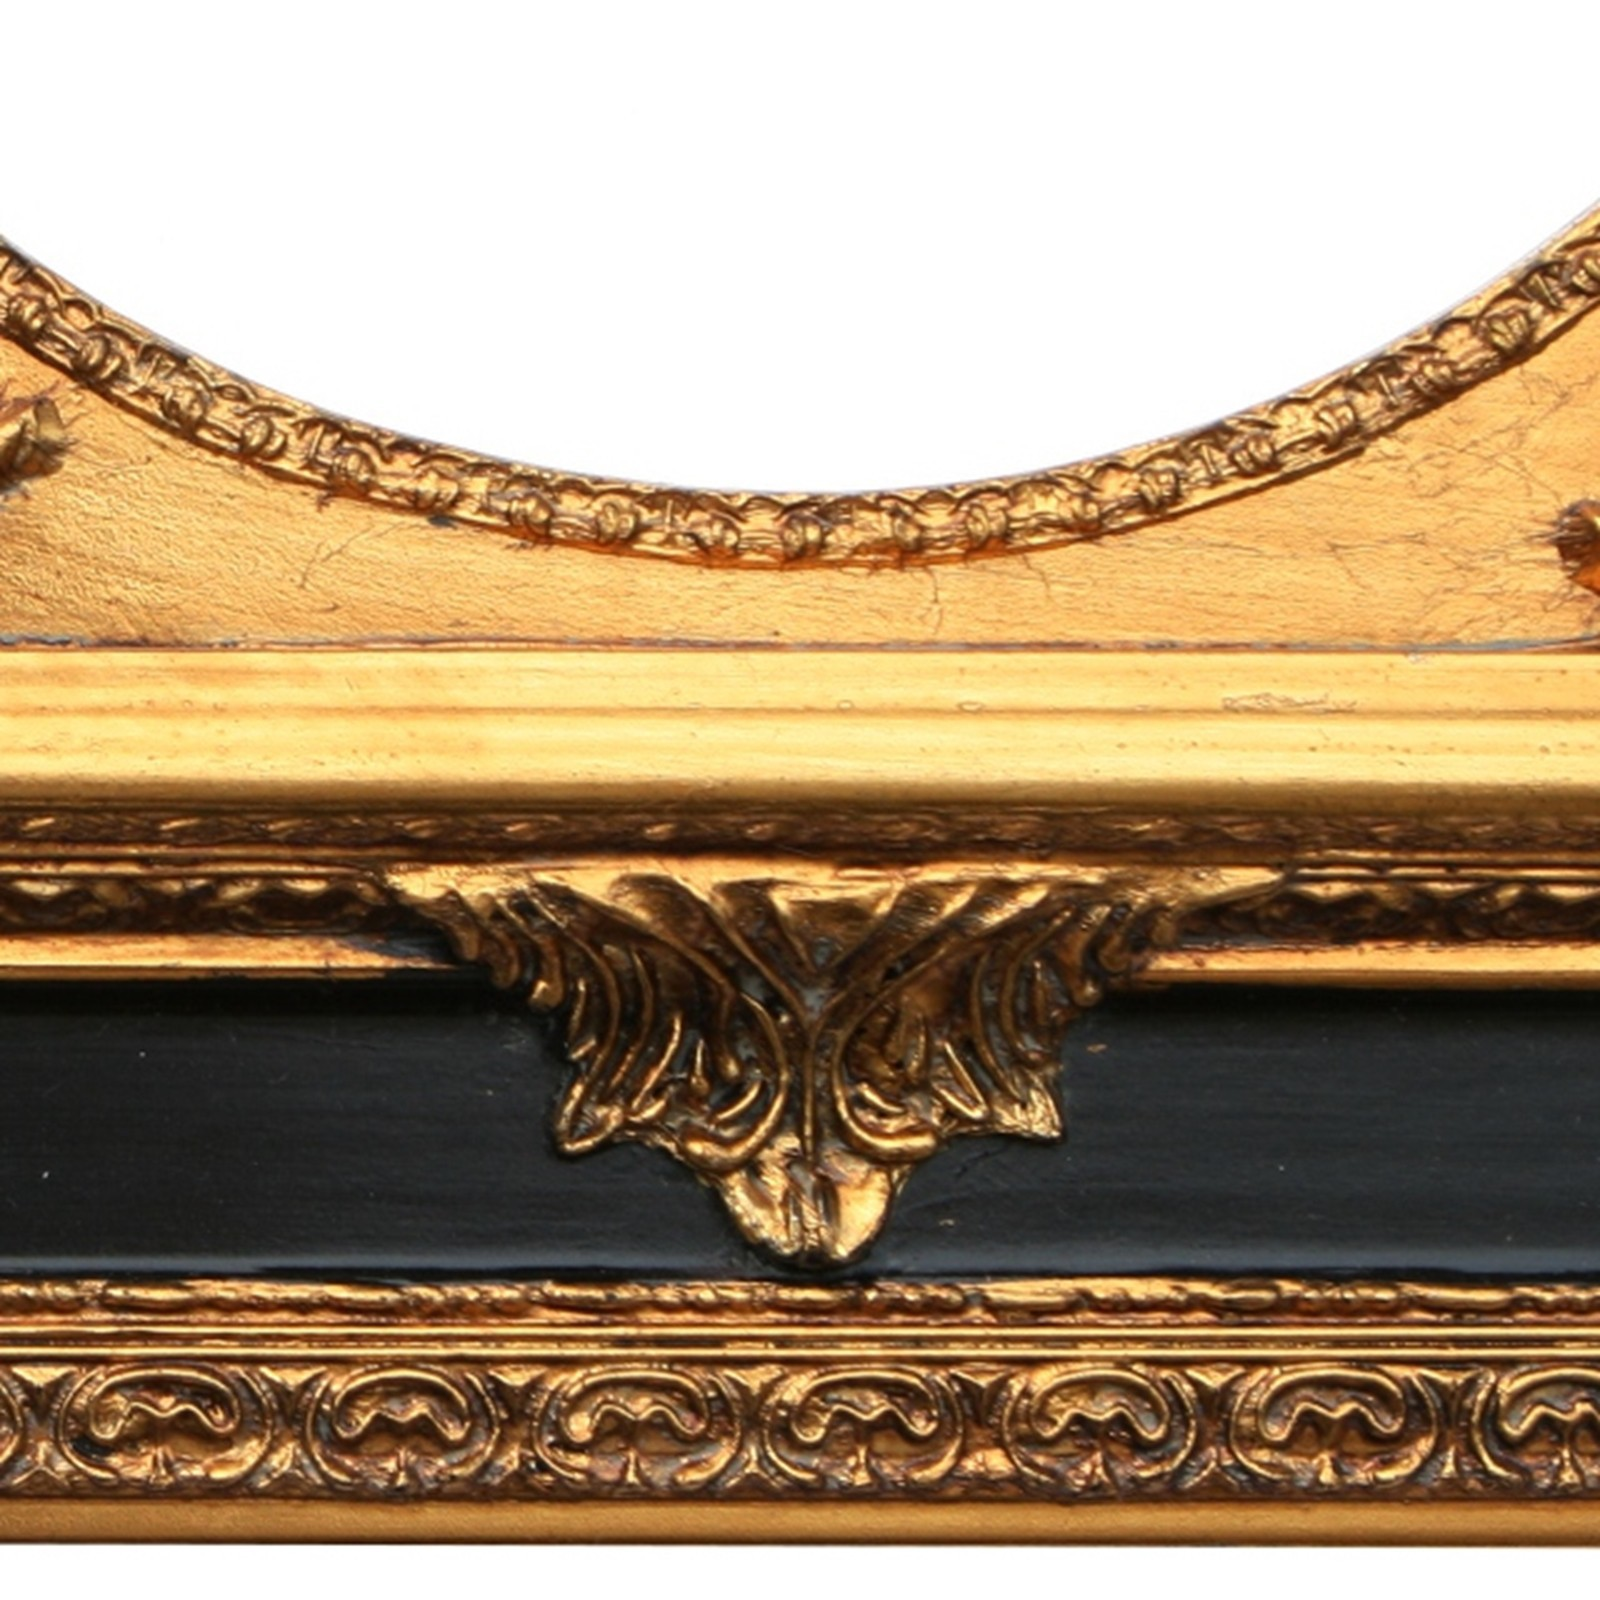 Baroque Wall Mirror Oval Ornate Frame 50x60/ 20x24 inches antique ...